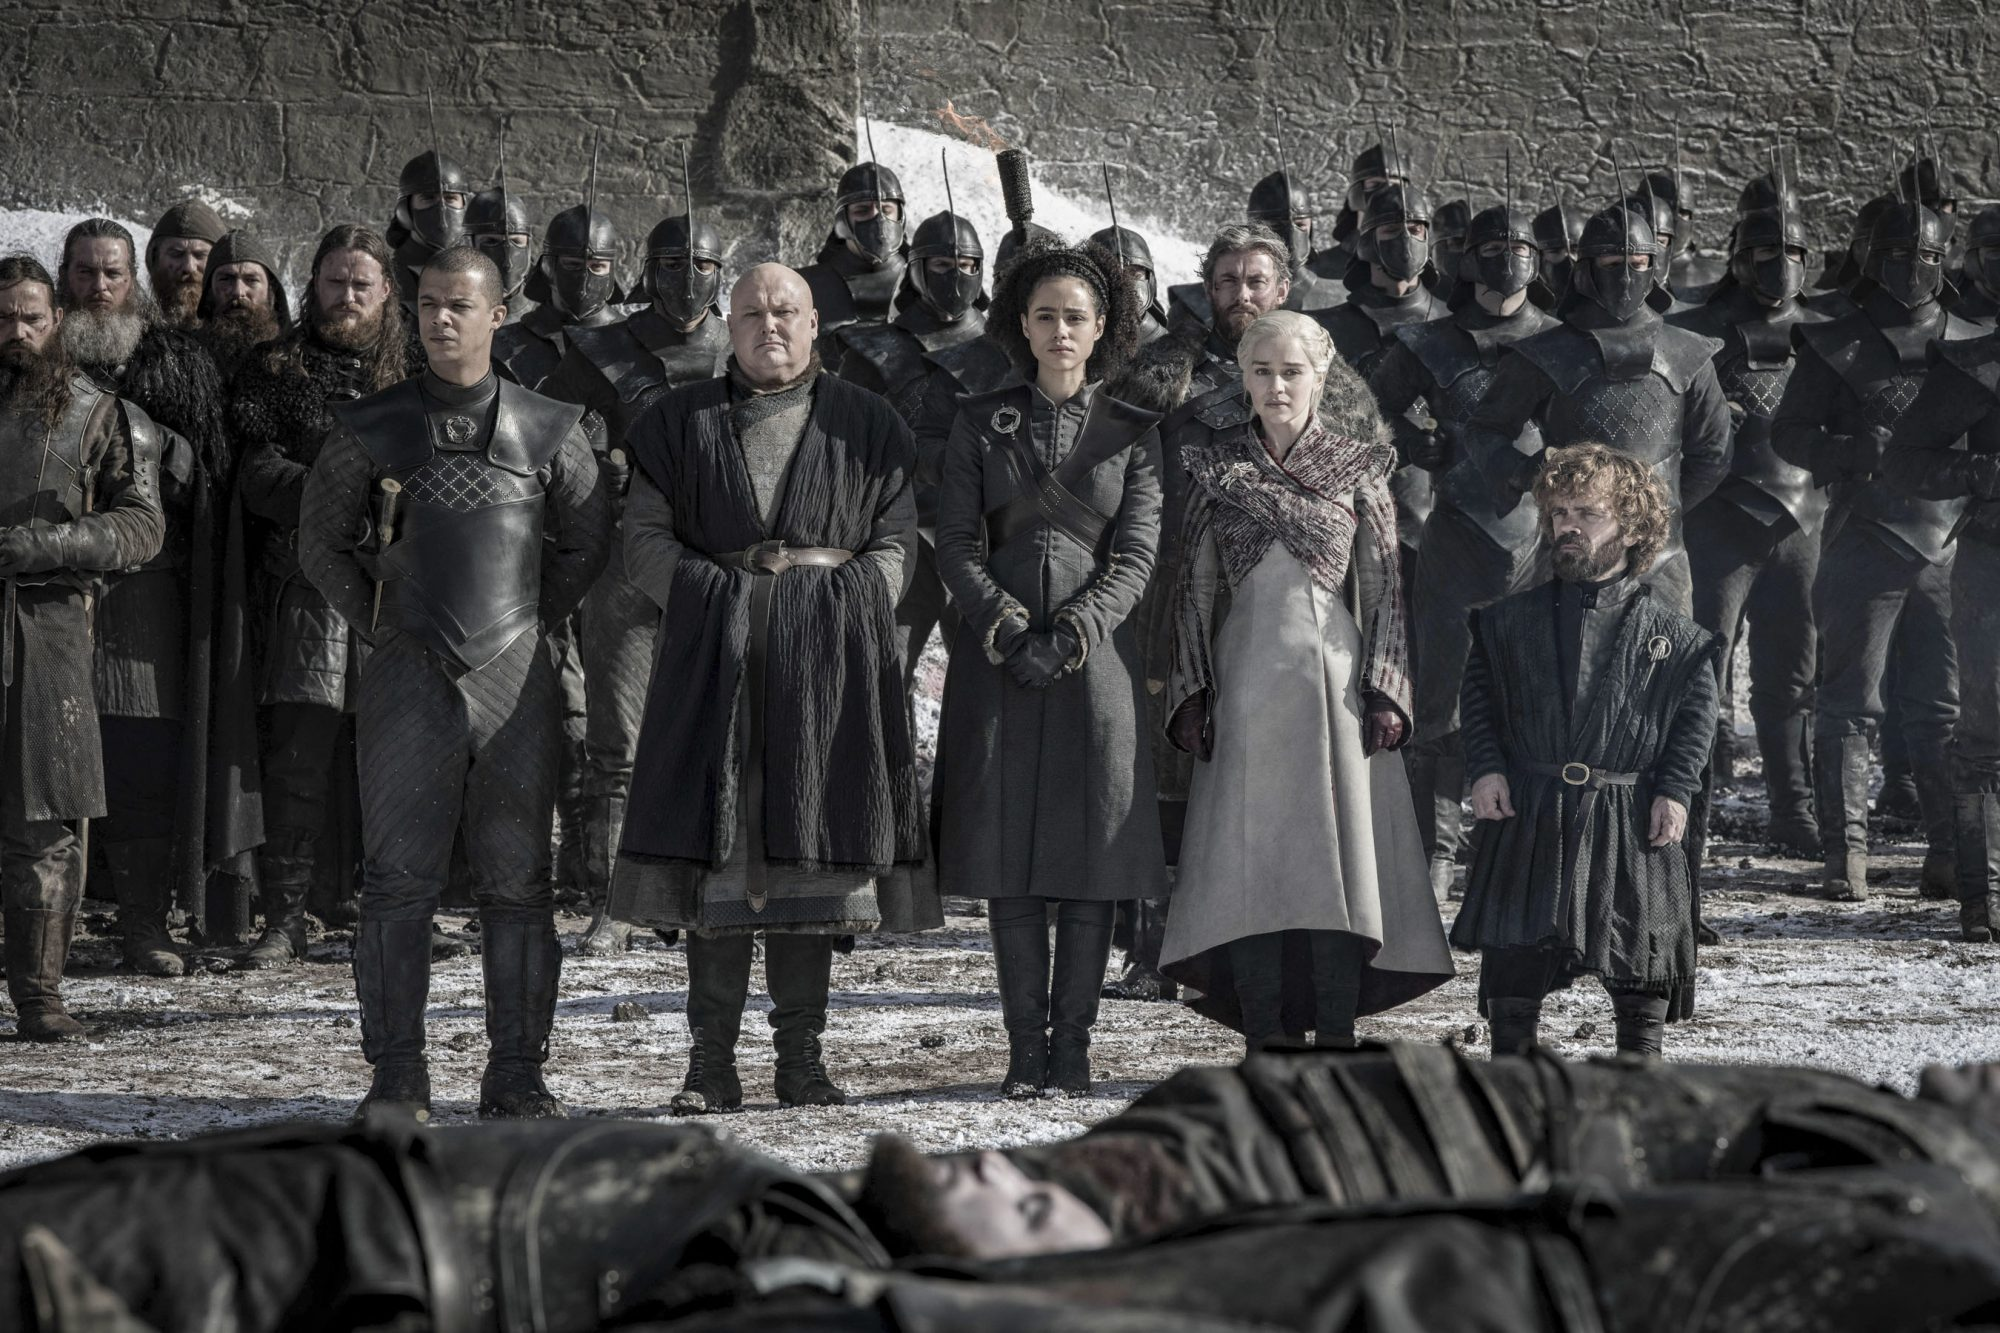 Game of Thrones Season 8, Episode 4 (L to R) Jacob Anderson as Grey Worm, Conleth Hill as Varys, Nathalie Emmanuel as Missandei, Emilia Clarke as Daenerys Targaryen, and Peter Dinklage as Tyrion Lannister - Photo: Helen Sloan/HBO